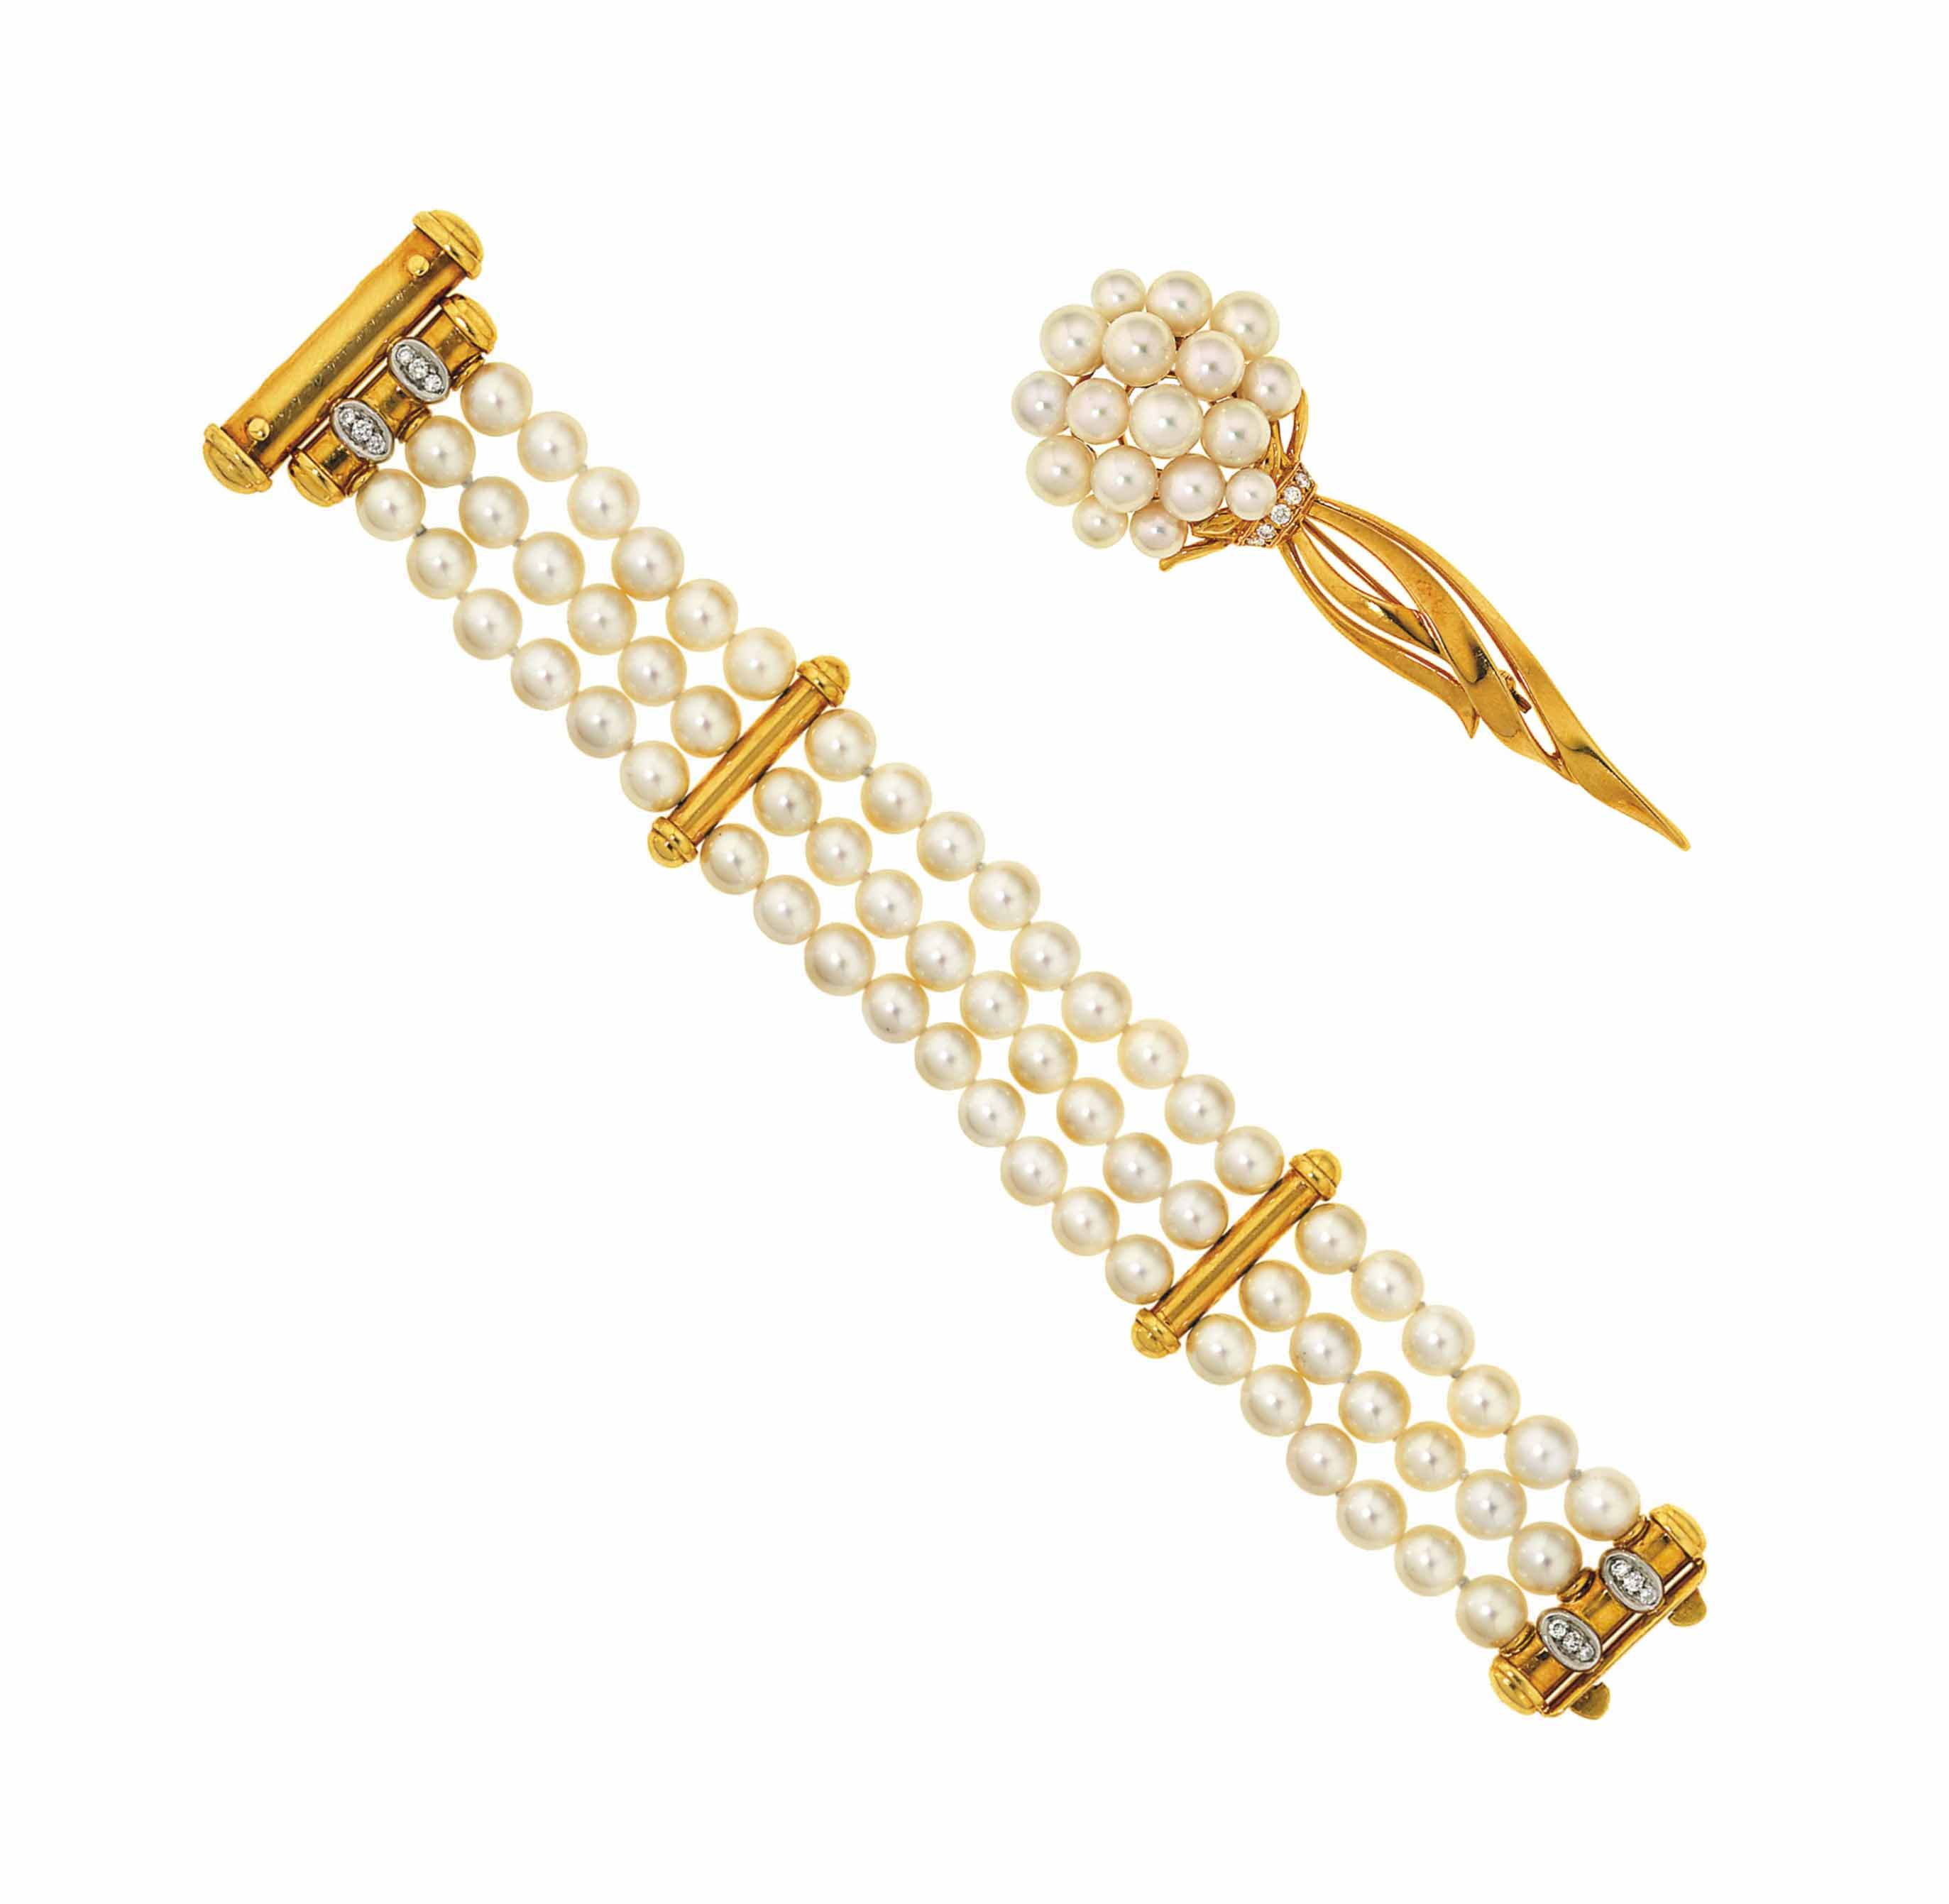 A cultured pearl and diamond bracelet and brooch, by Mikimoto